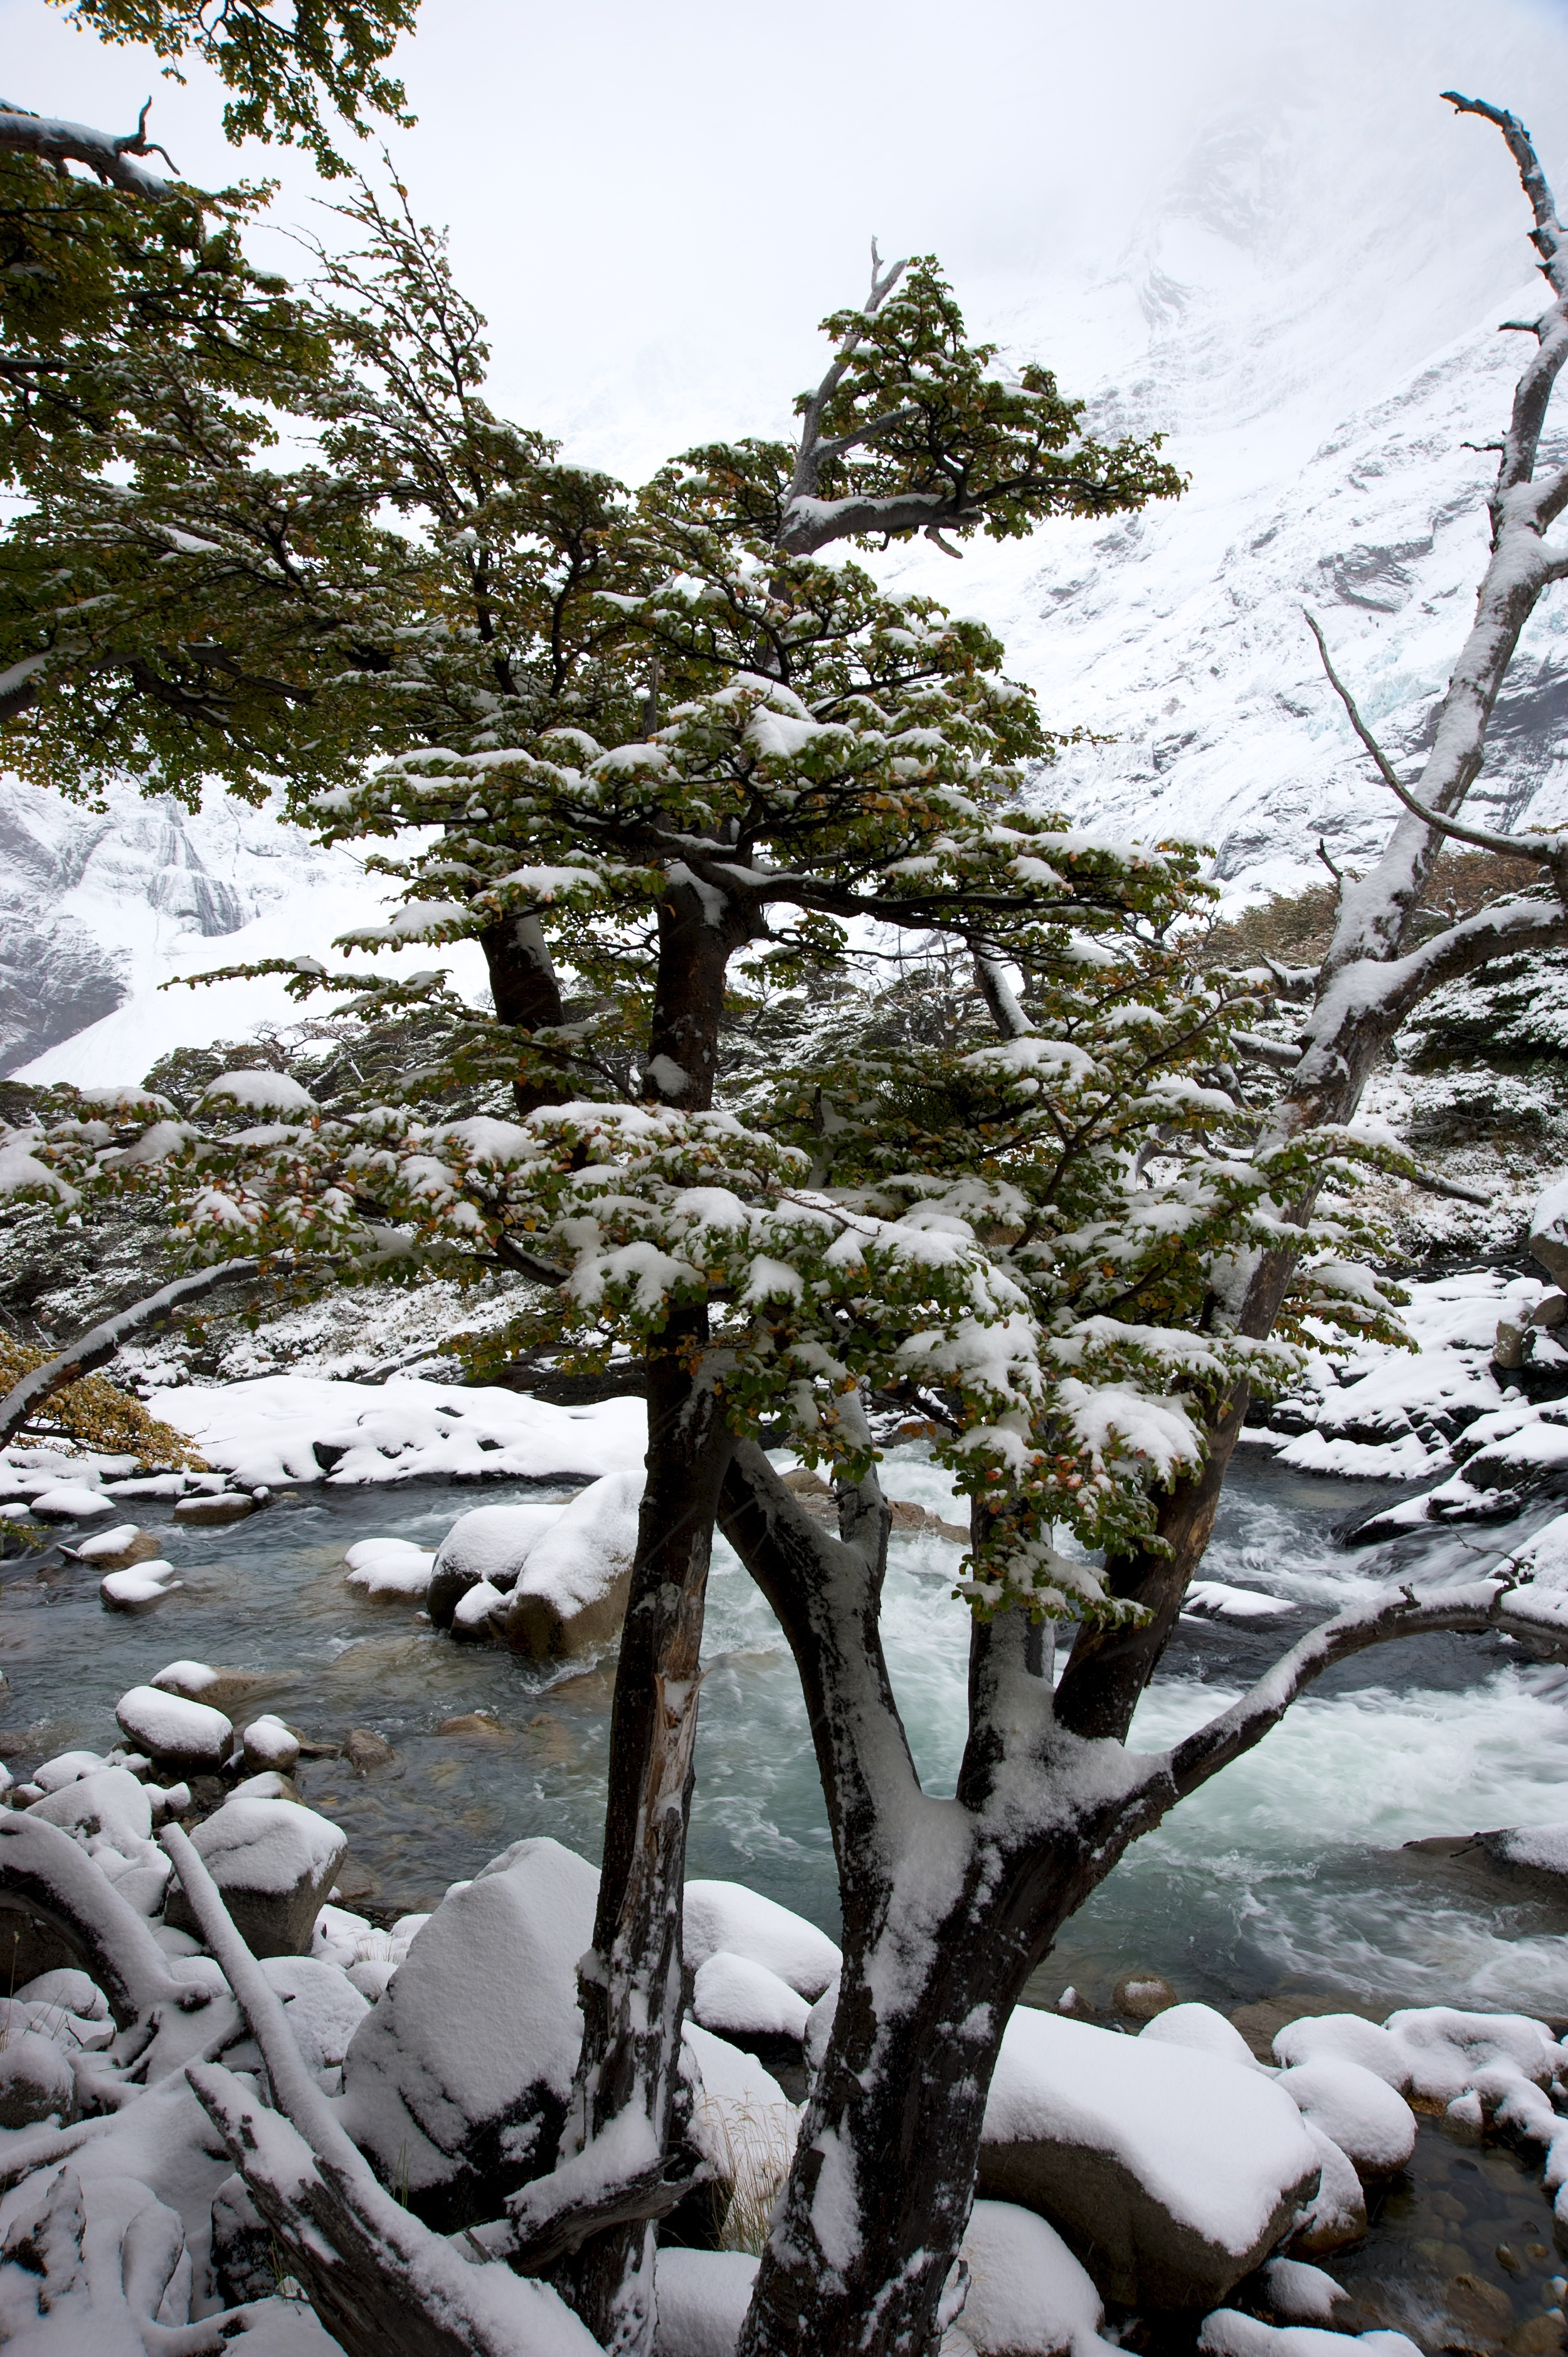 Trees in snow, Torres del Paine, Patagonia, Chile, 5 Apr 2012